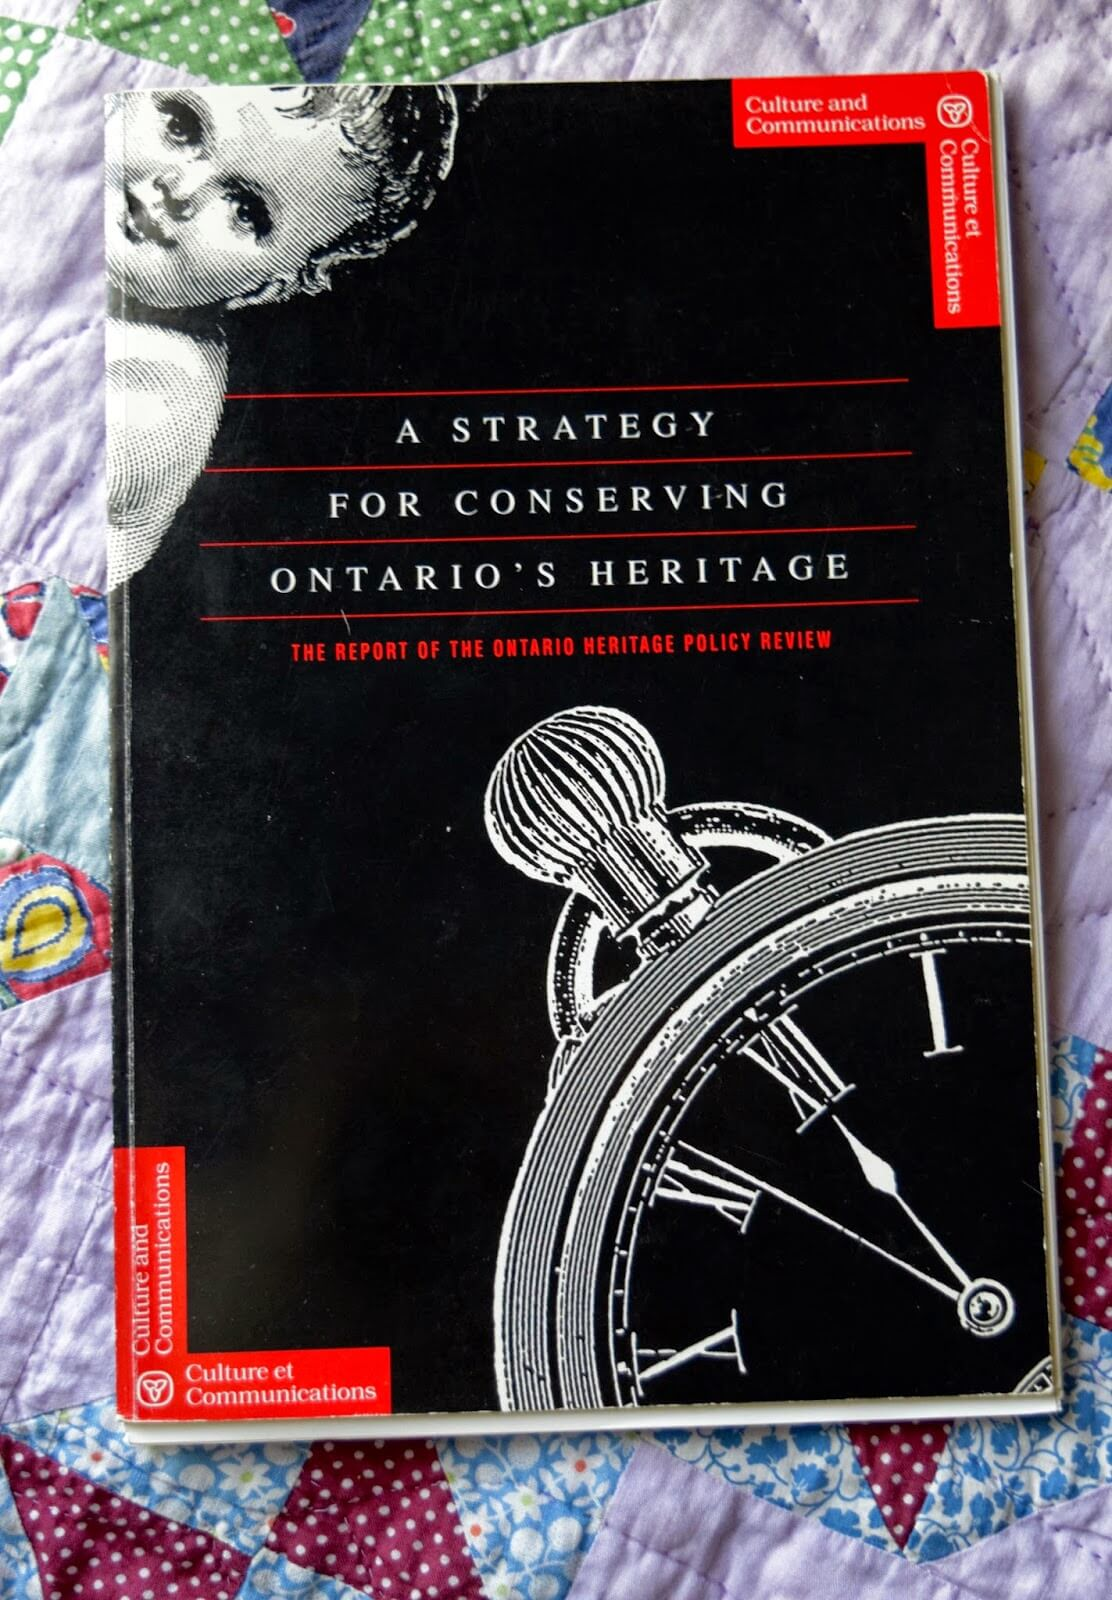 The book cover of A Strategy for Conserving Ontario's Heritage.